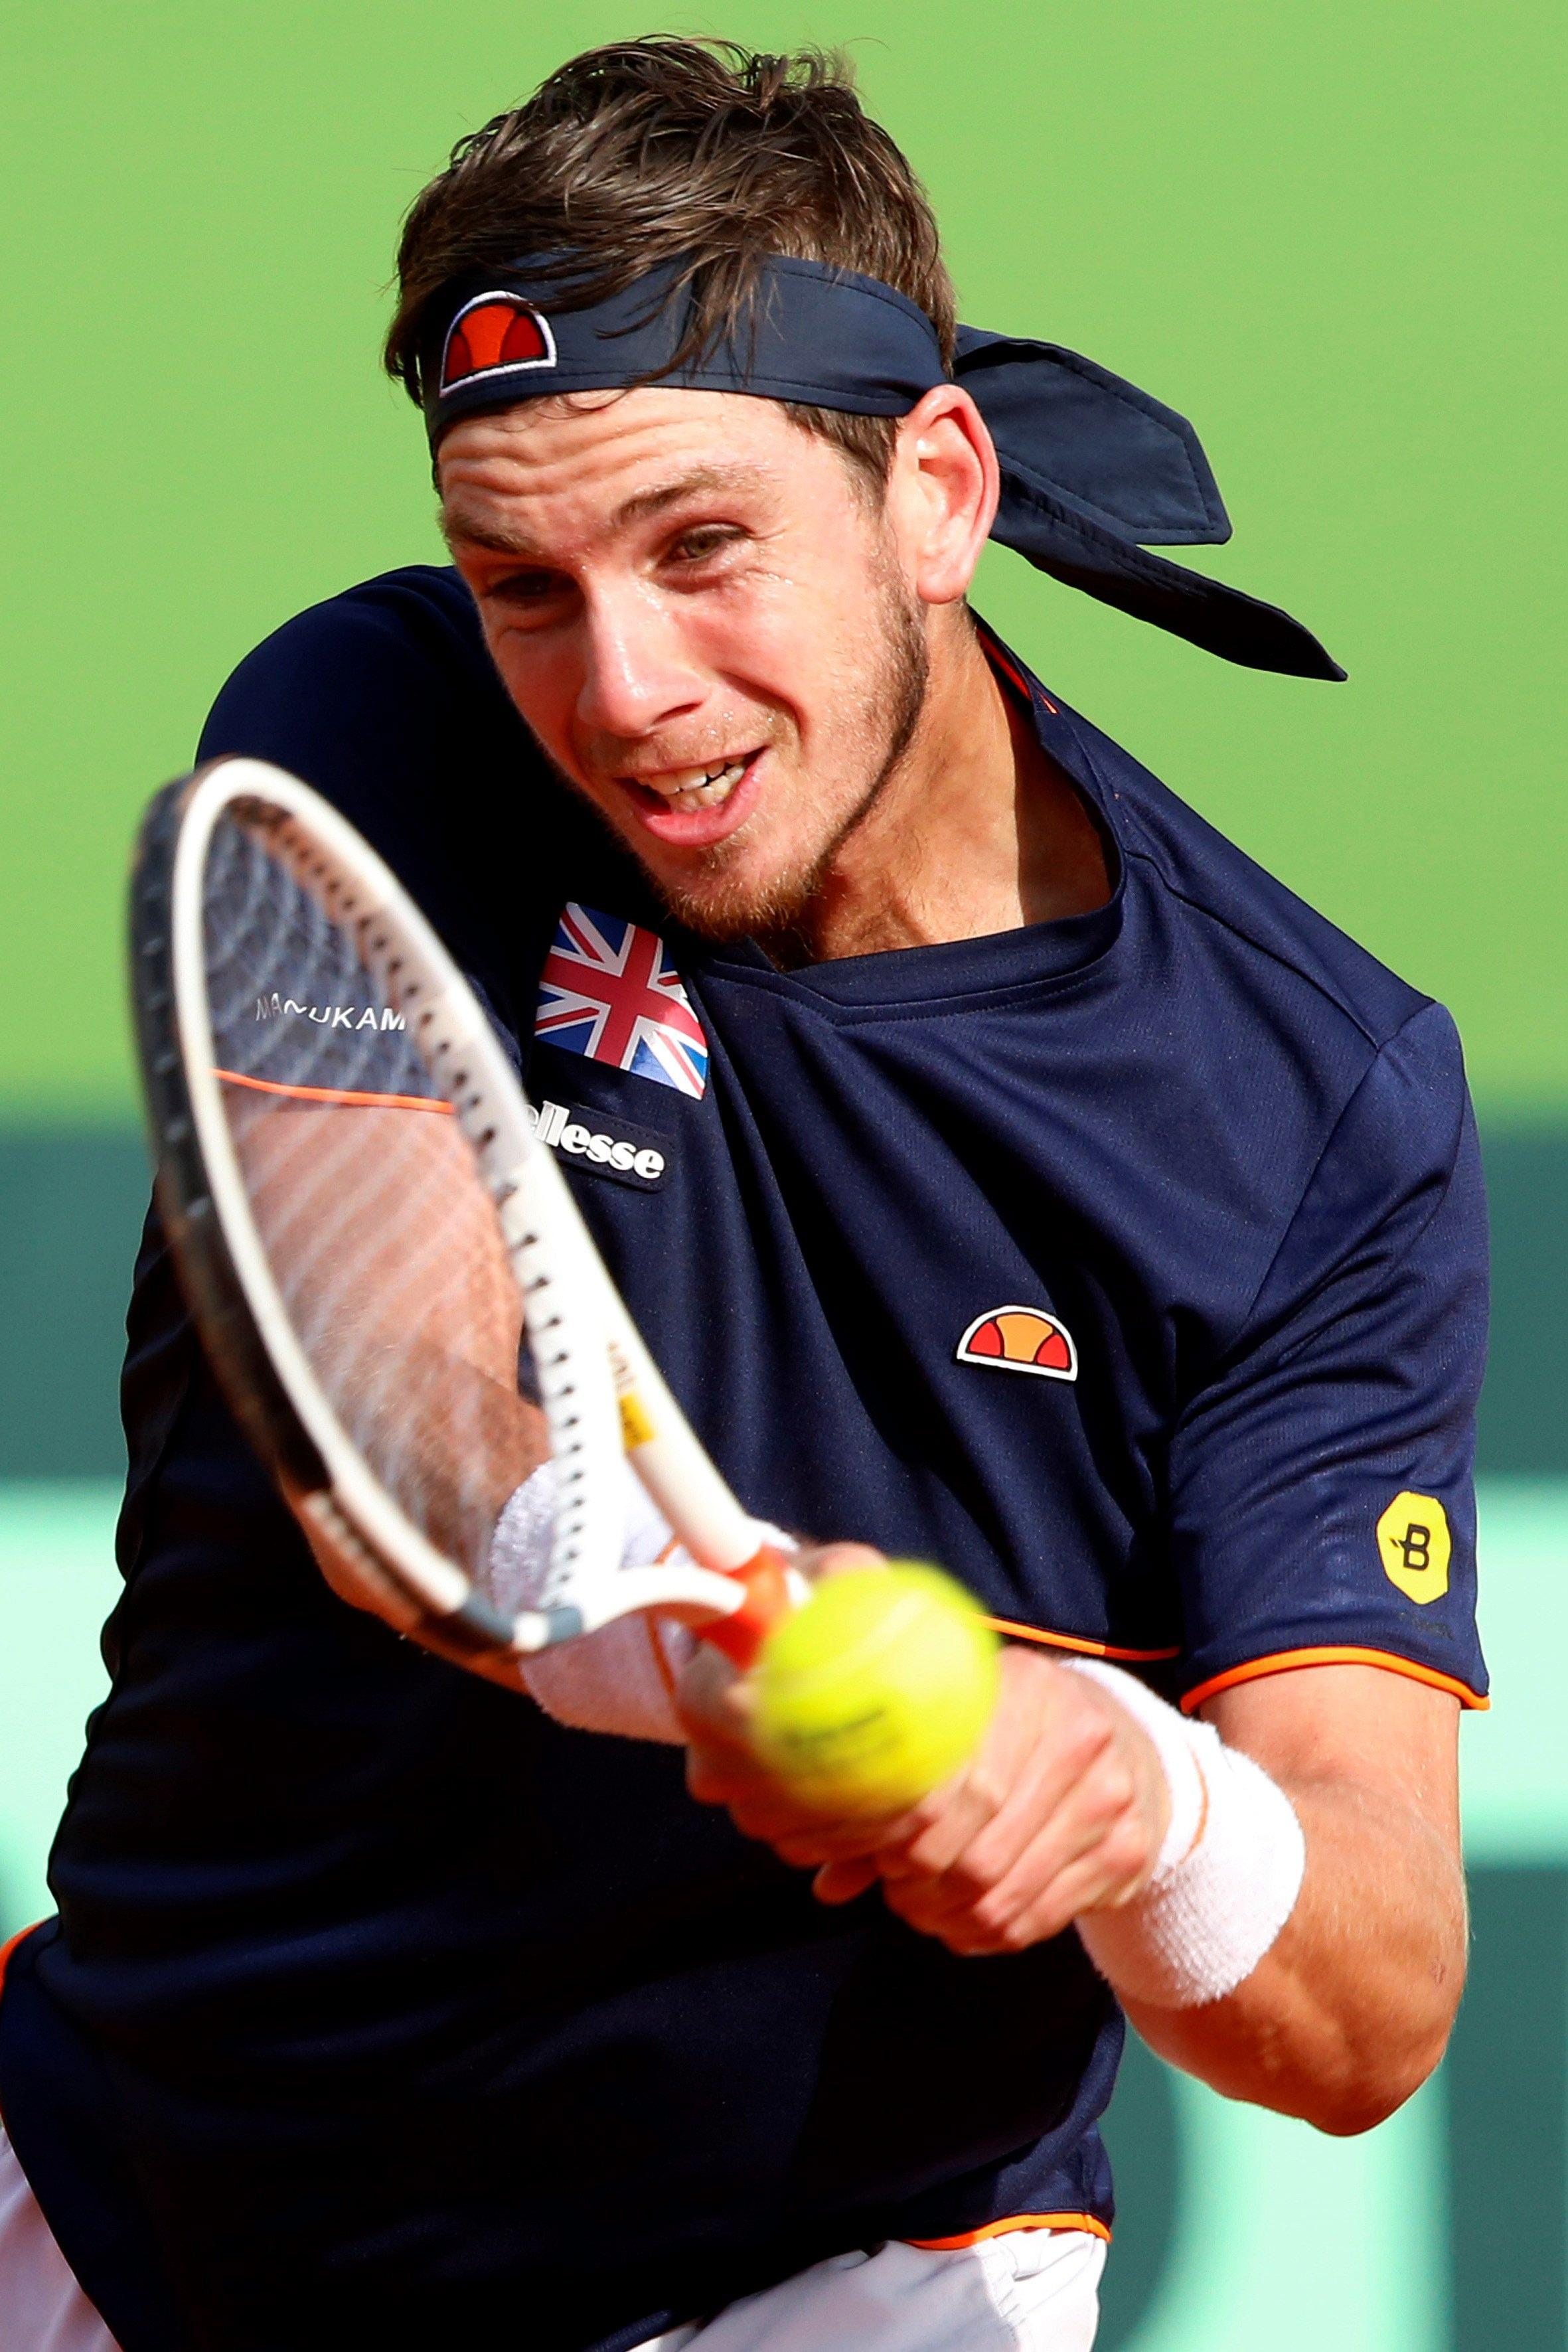 Cameron Norrie lost his second singles rubber to Albert Ramos Vinolas to seal Great Britain's defeat to Spain in the World Group first round in February